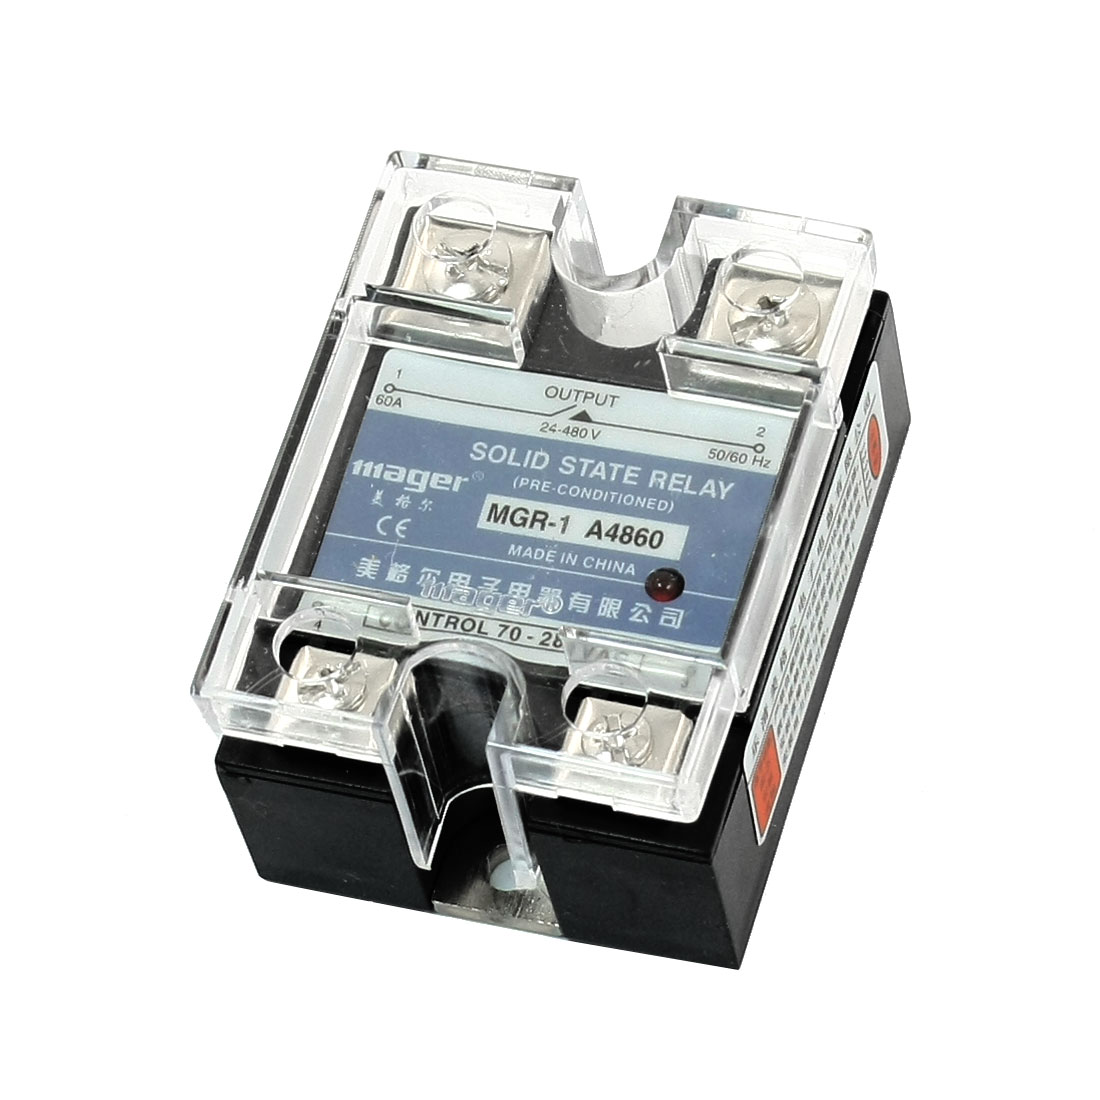 AC to AC Rectangle Clear Cover 4 Screw Terminal Single Phase SSR Solid State Relay 70-280V 24-480V 60A